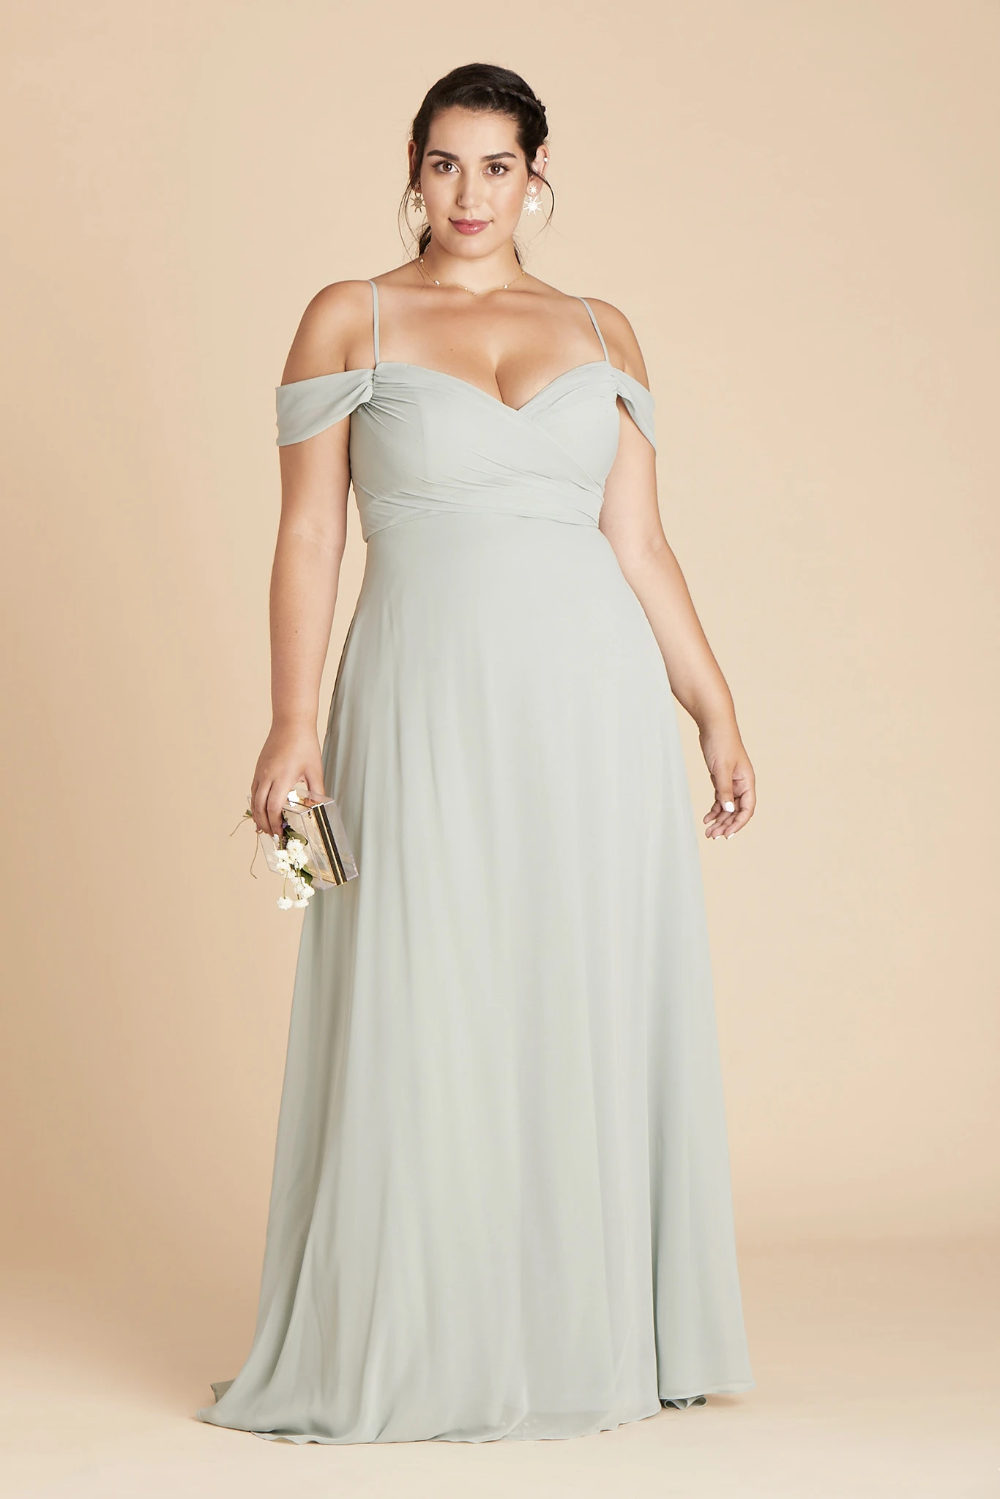 Spence Convertible Dress Curve Sage In 2020 Convertible Bridesmaid Dress Bridesmaid Dresses Mint Bridesmaid Dresses